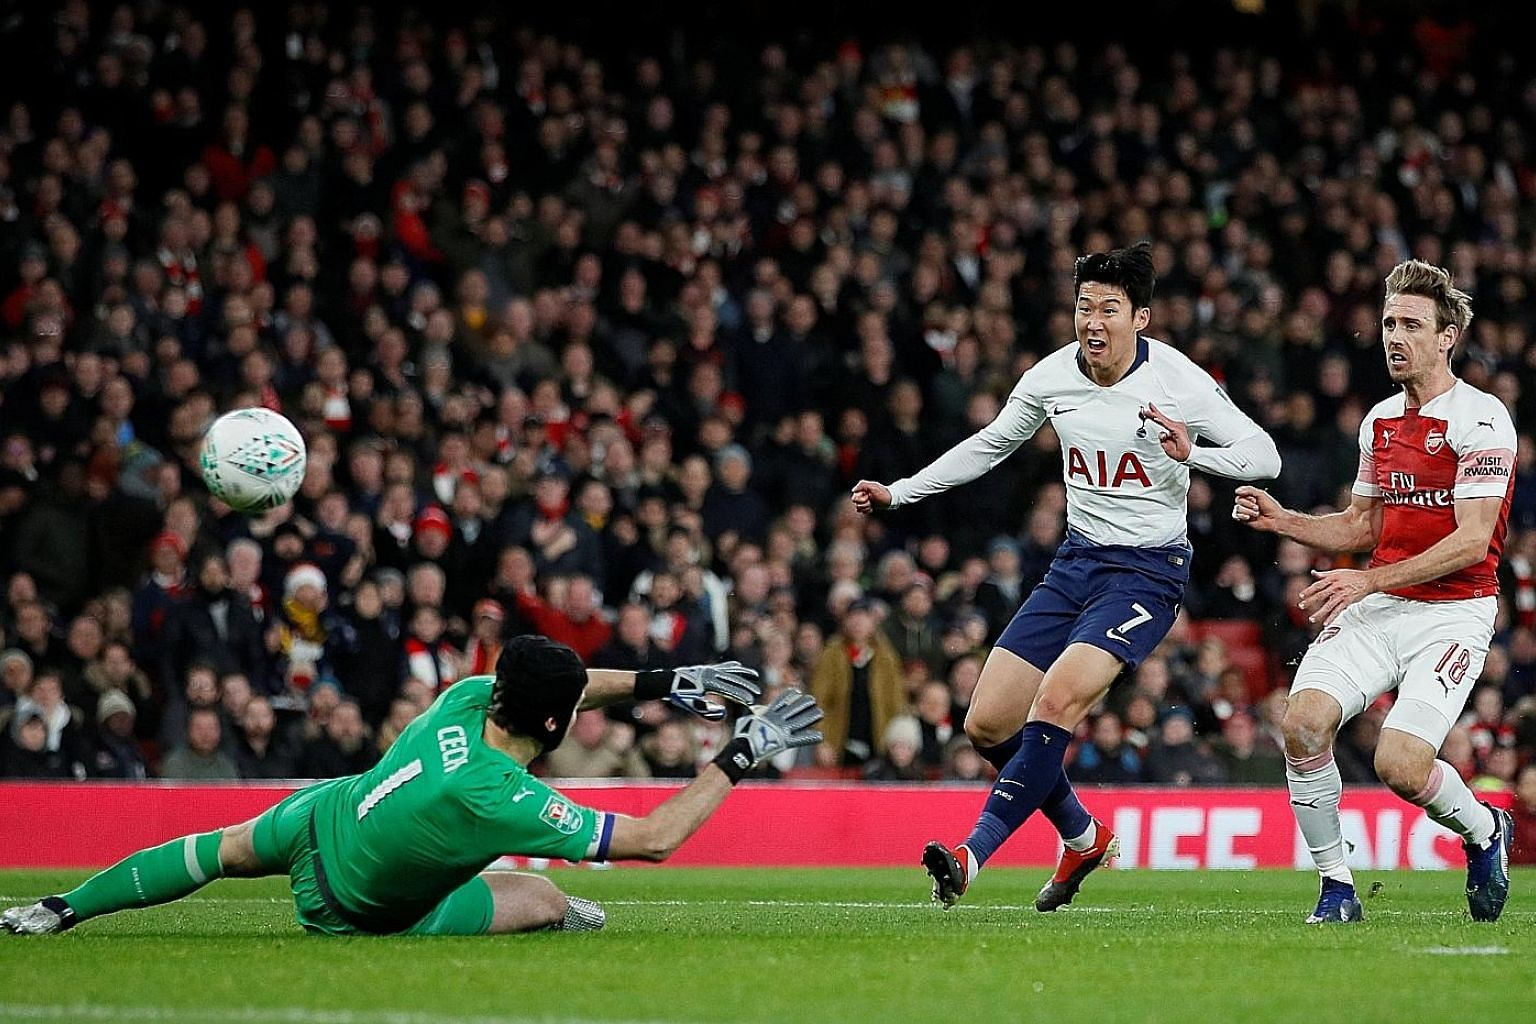 Above: Son Heung-min scoring past Arsenal goalkeeper Petr Cech to put Tottenham in the lead in their League Cup quarter-final at the Emirates Stadium. Left and below: Spurs' Dele Alli being led away by the Gunners' Sokratis Papastathopoulos after bei